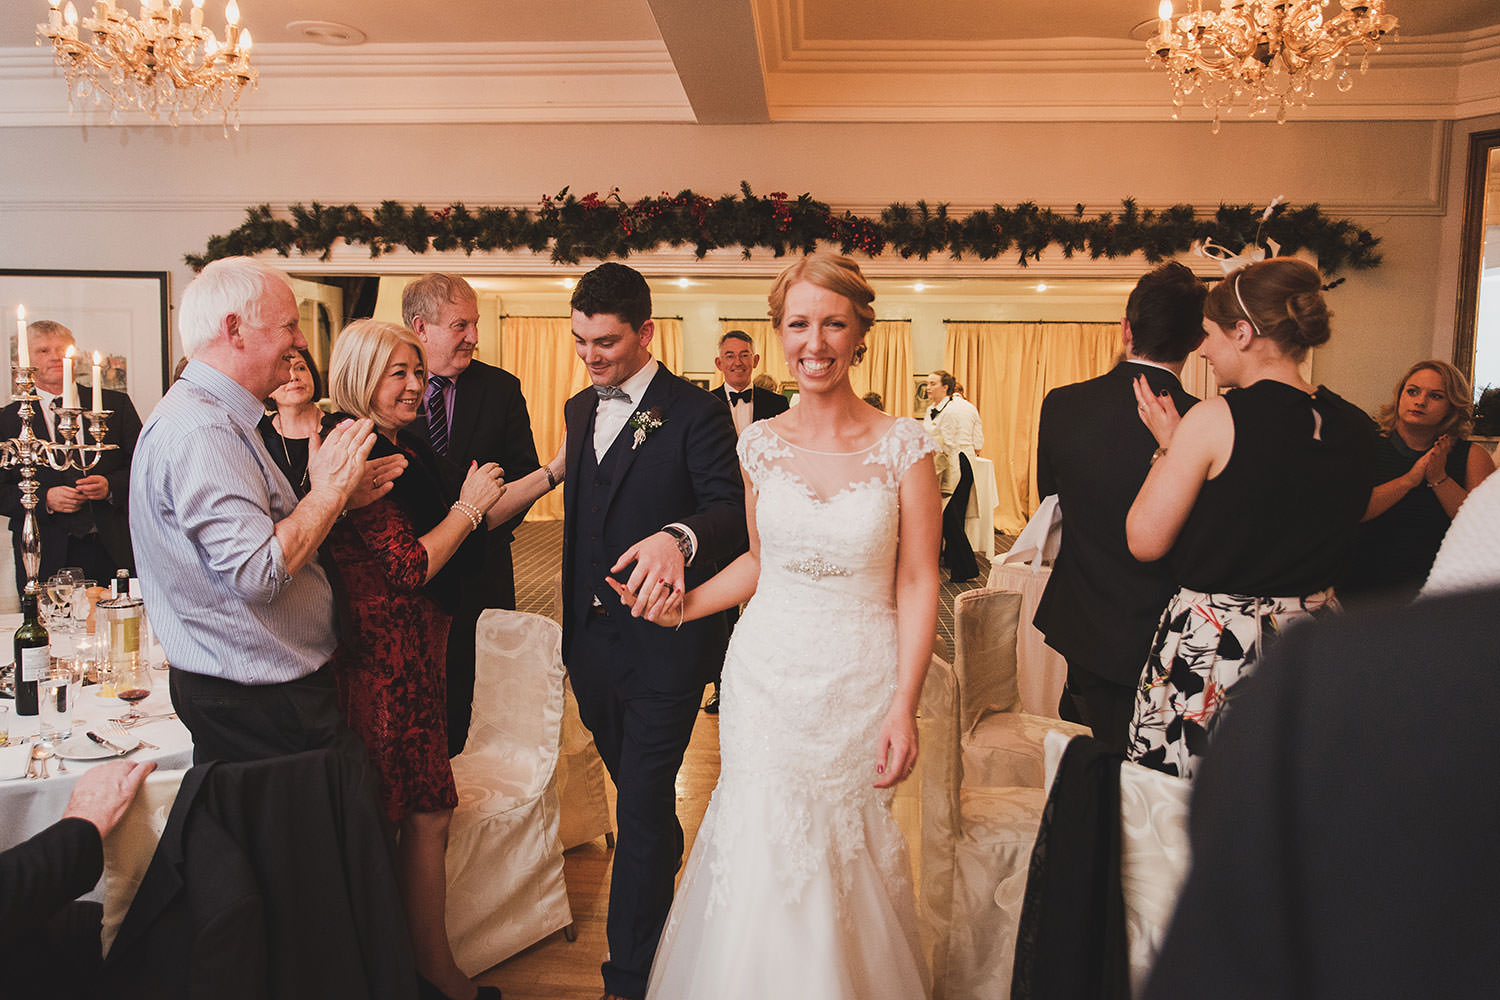 dunraven-arms-hotel-wedding-photography-156.jpg